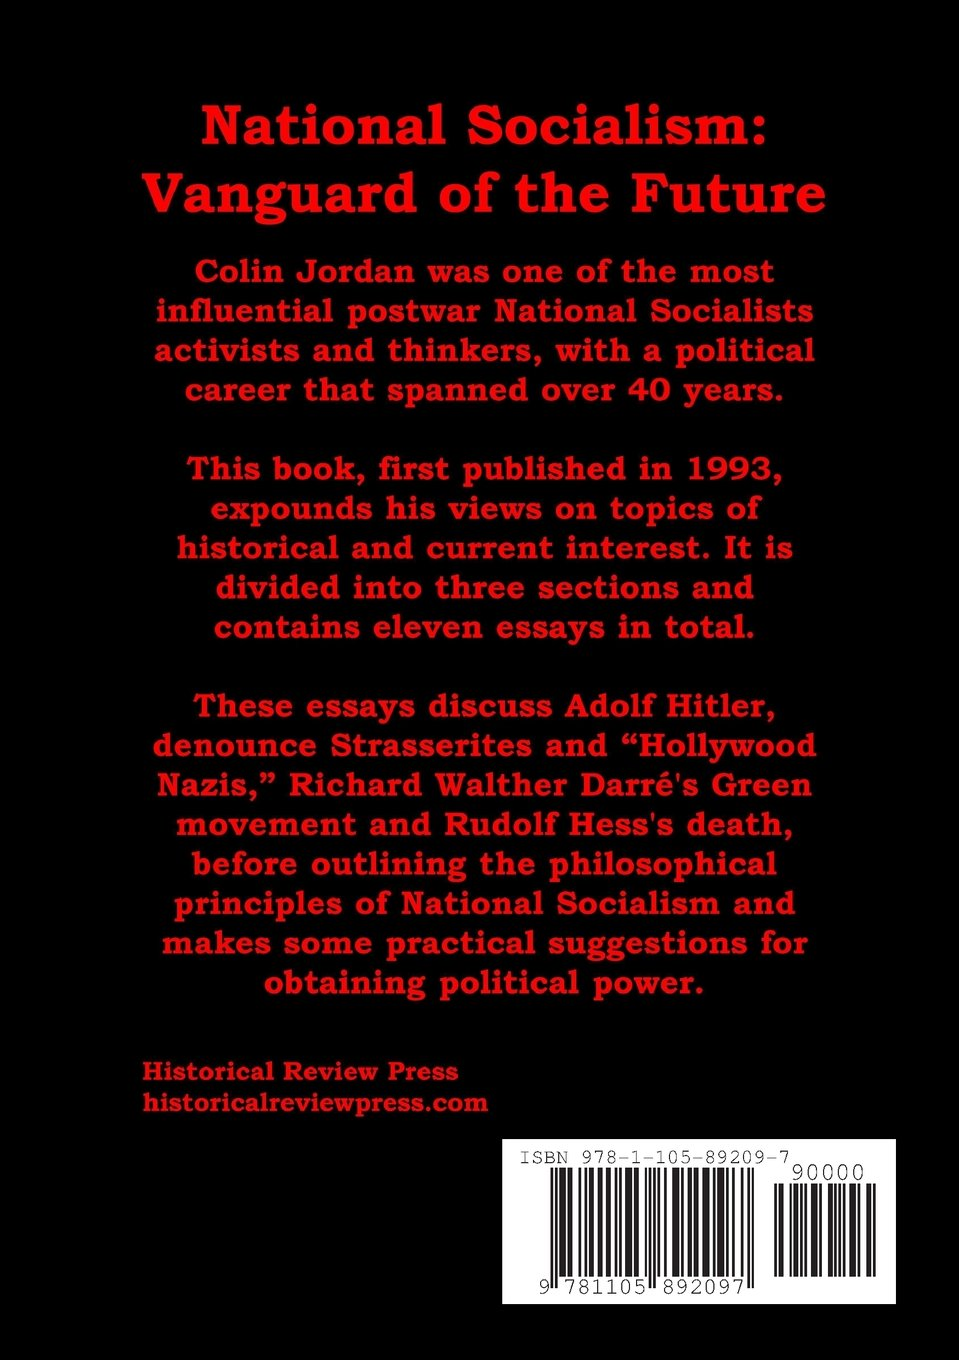 adolf hitler essays hitler essay hitler essay philadelphia  national socialism vanguard of the future colin national socialism vanguard of the future colin 9781105892097 com adolf hitler thesis statements